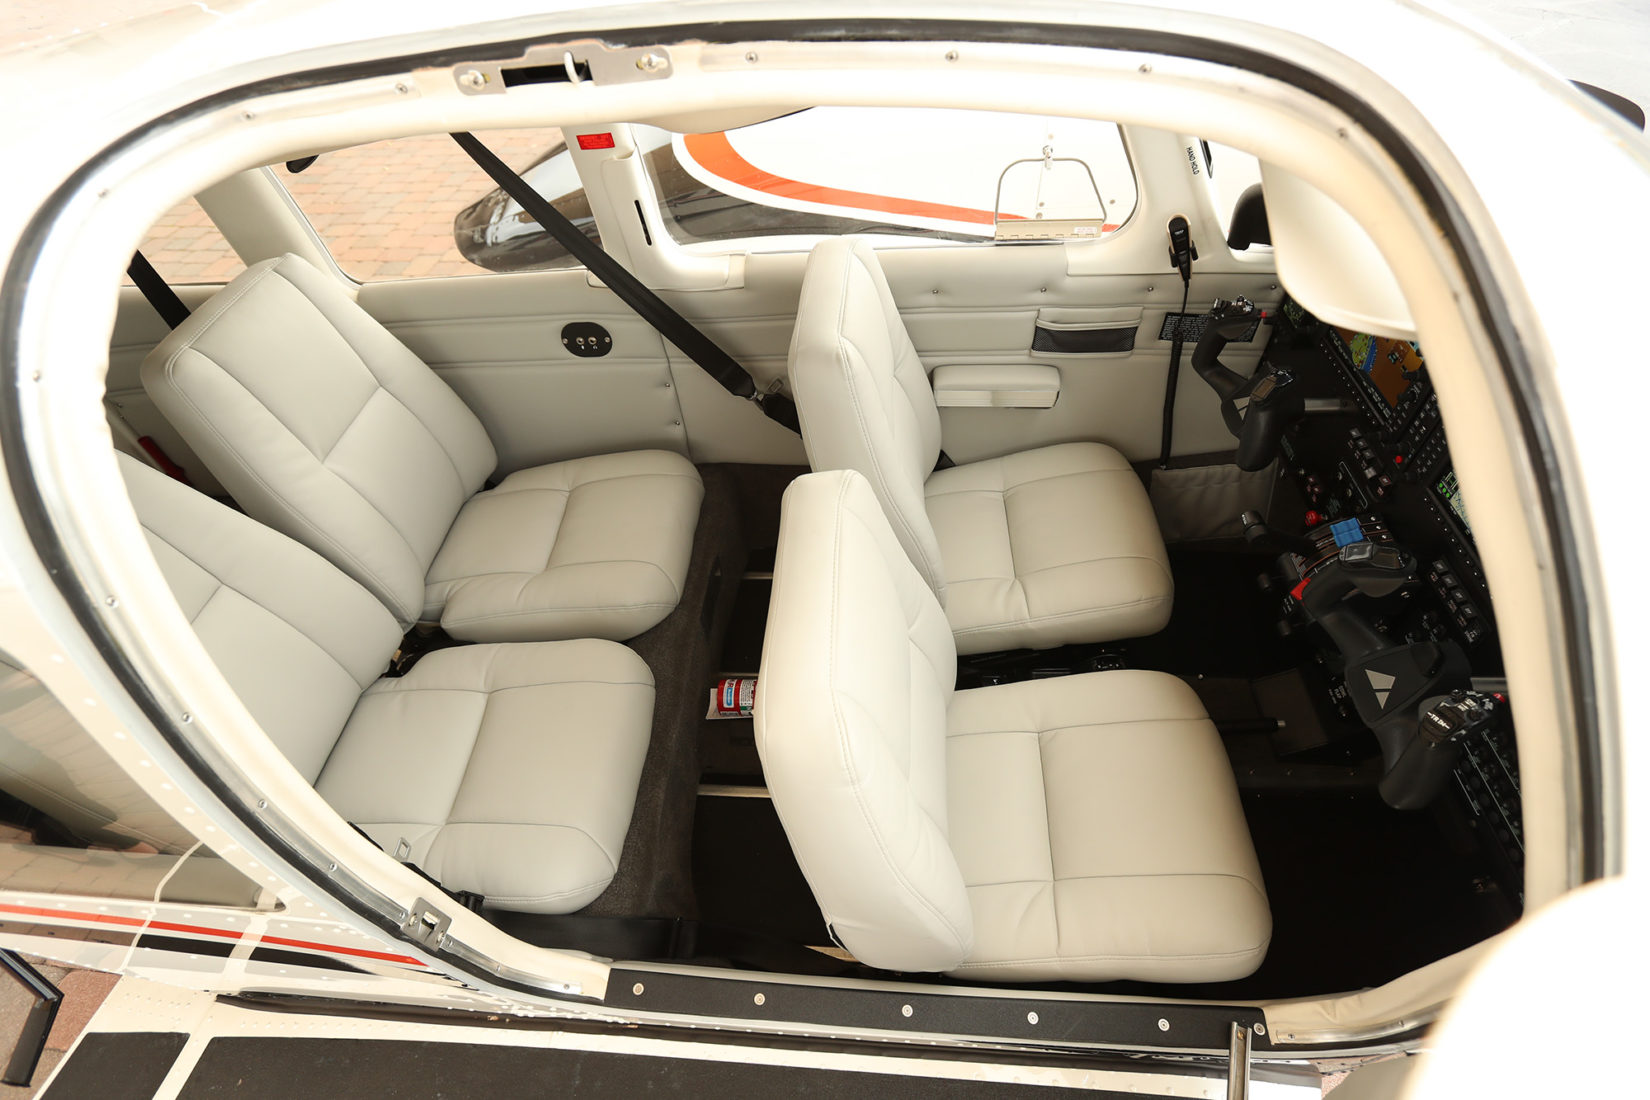 Interior of the Seminole model